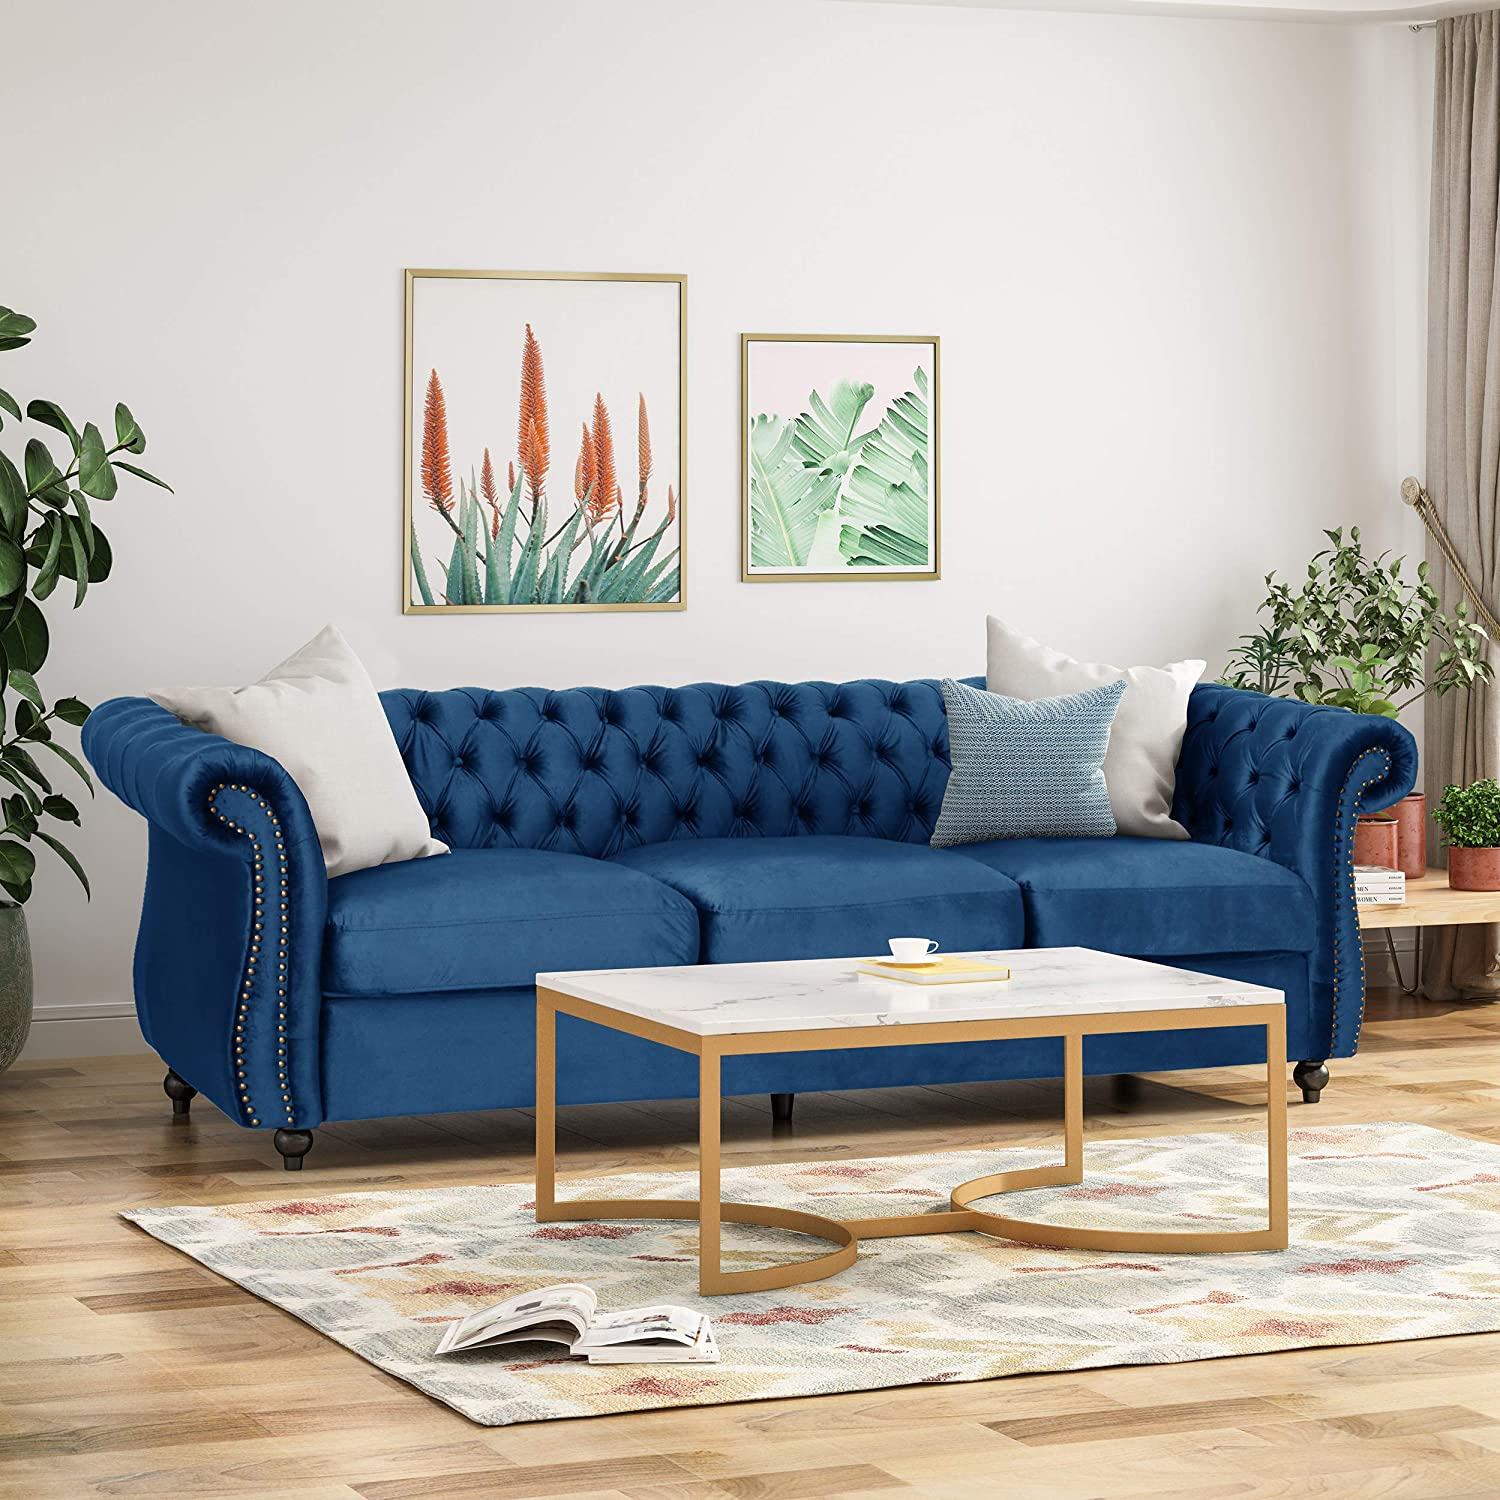 Tufted Jewel Toned Velvet Sofa with Scroll Arms, Navy Blue